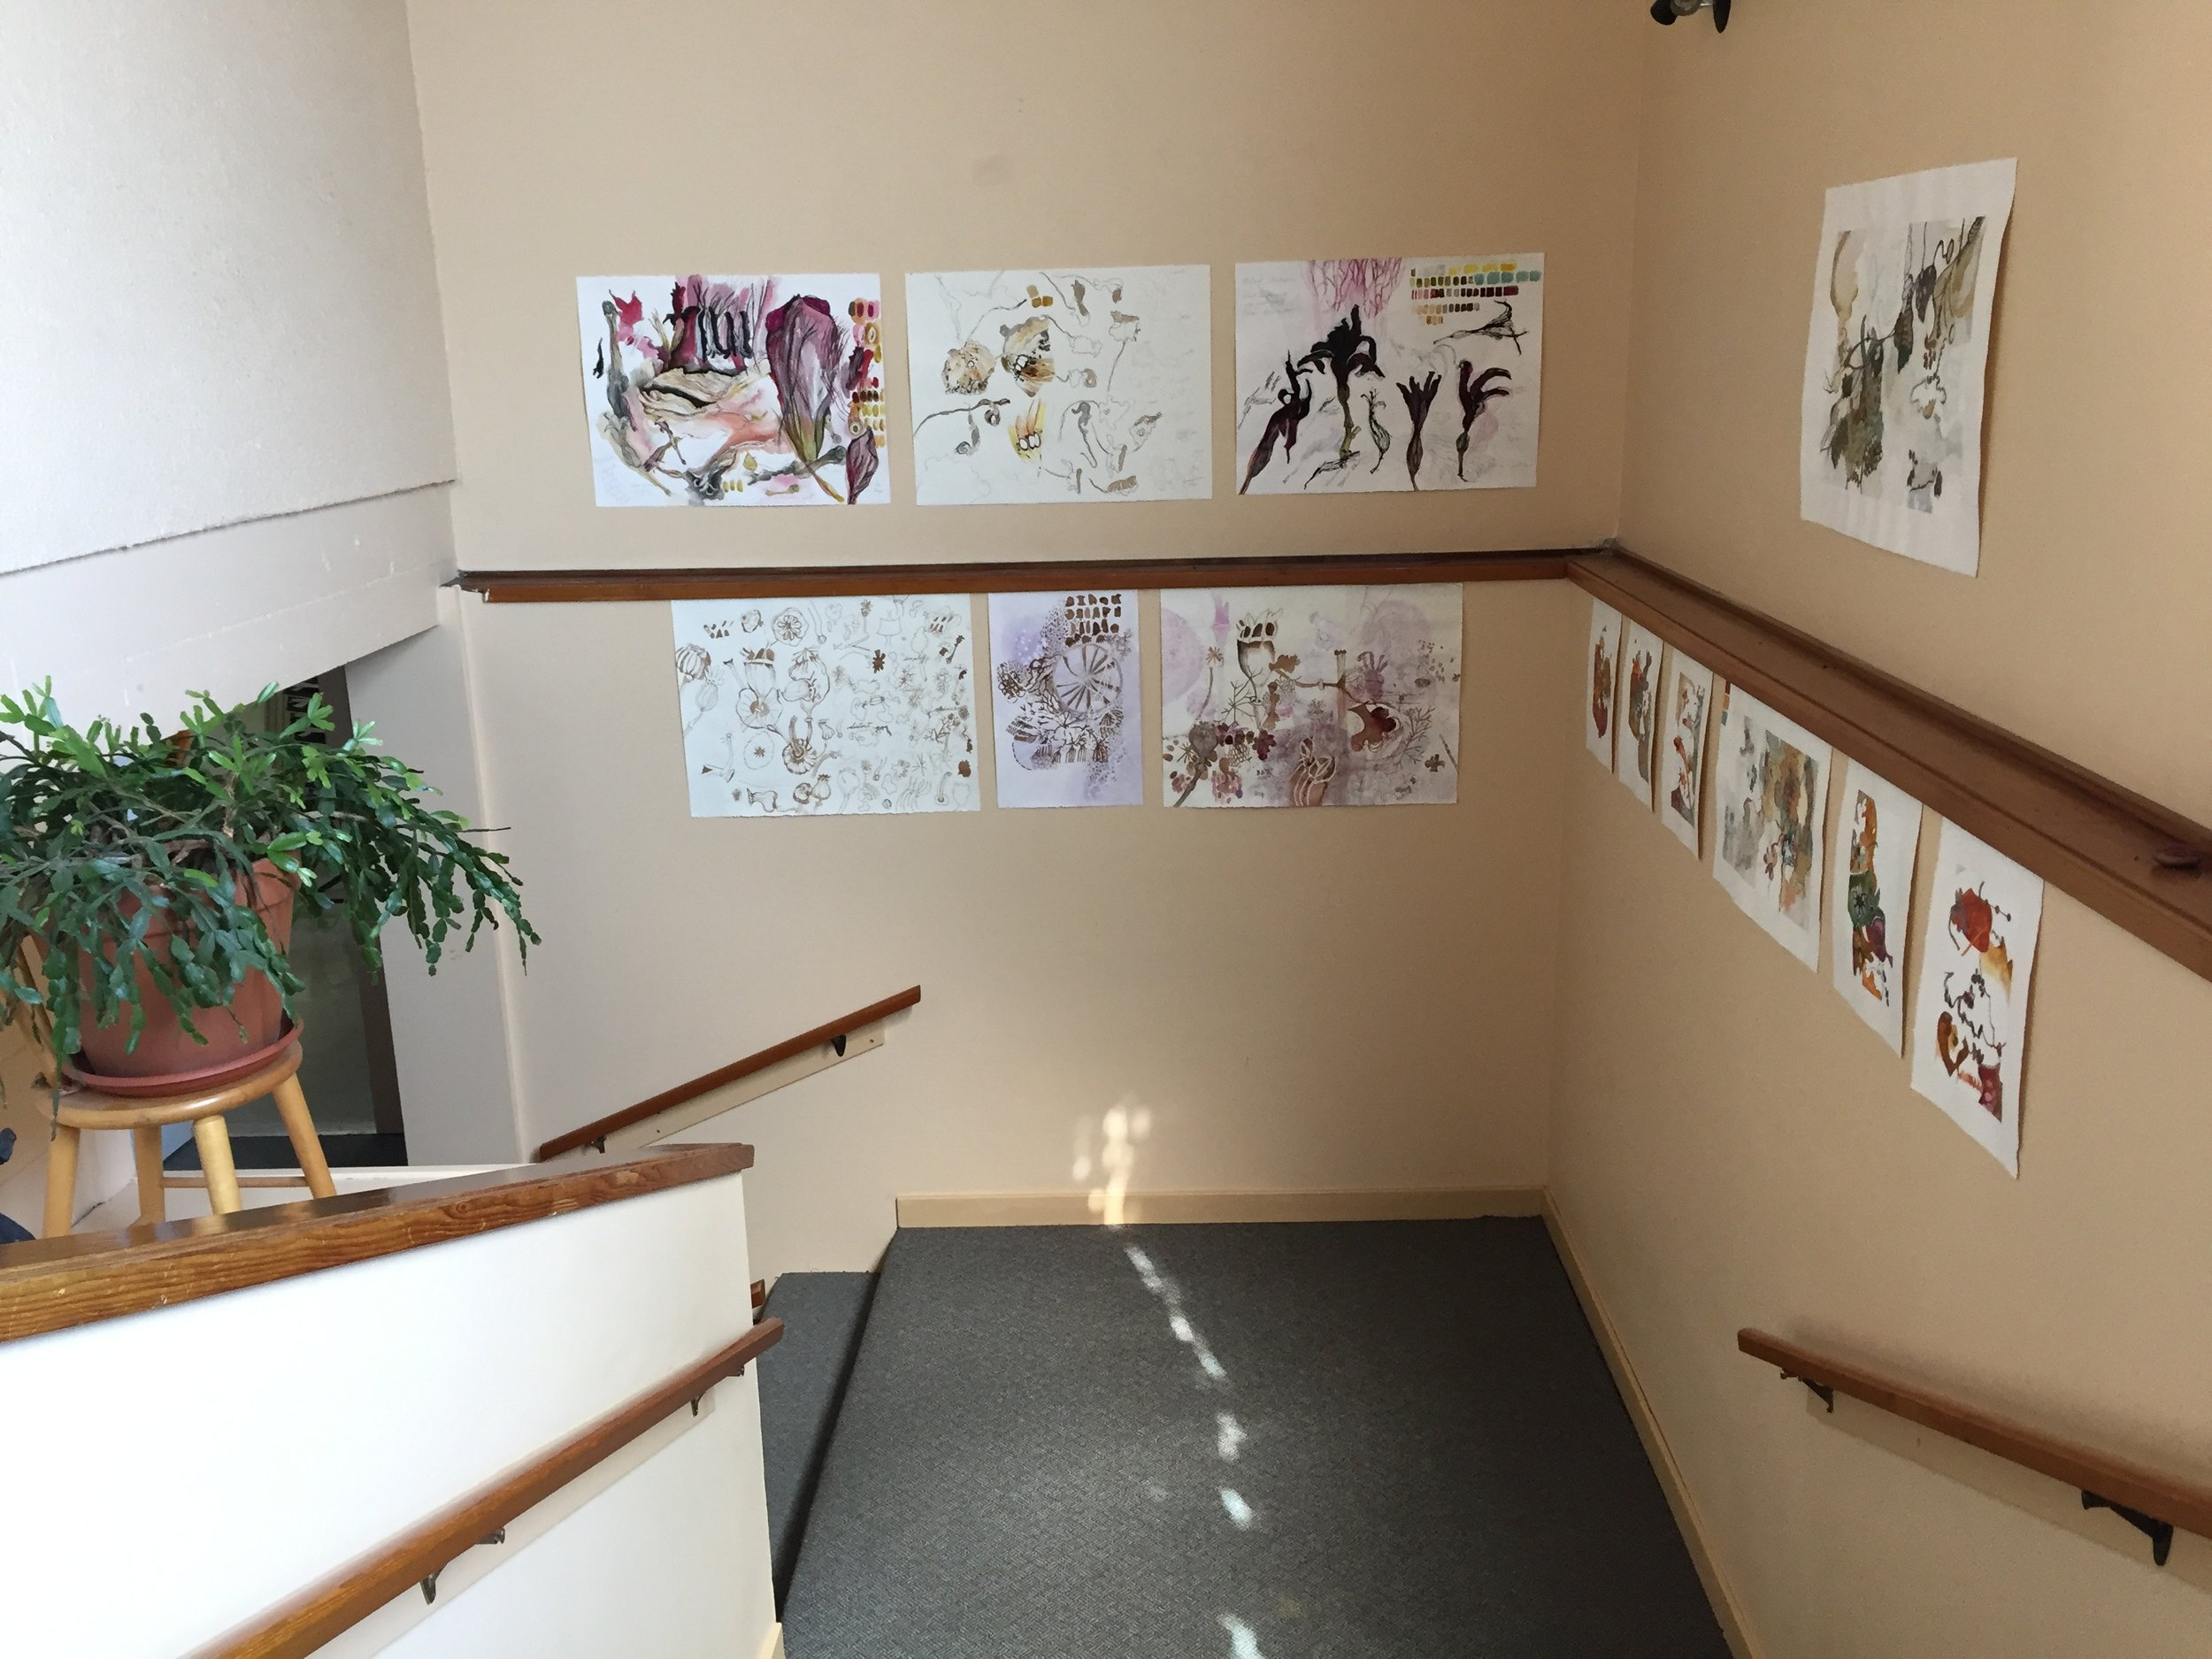 stairwell images.jpg